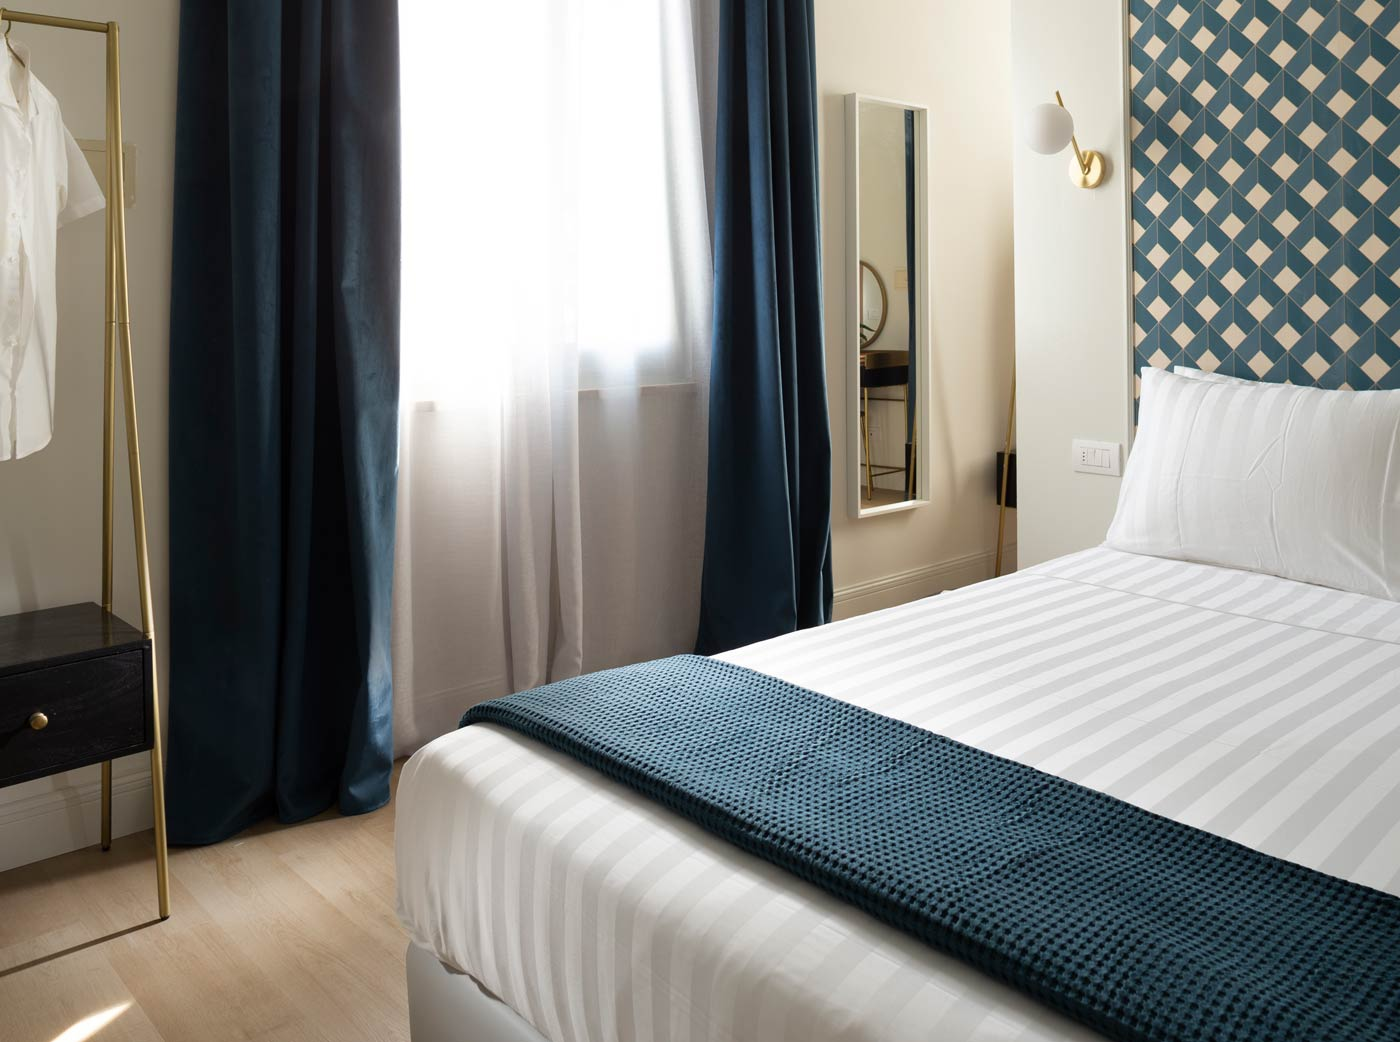 Junior Suite - Hotel Buonafortuna 3 Stelle Bellaria